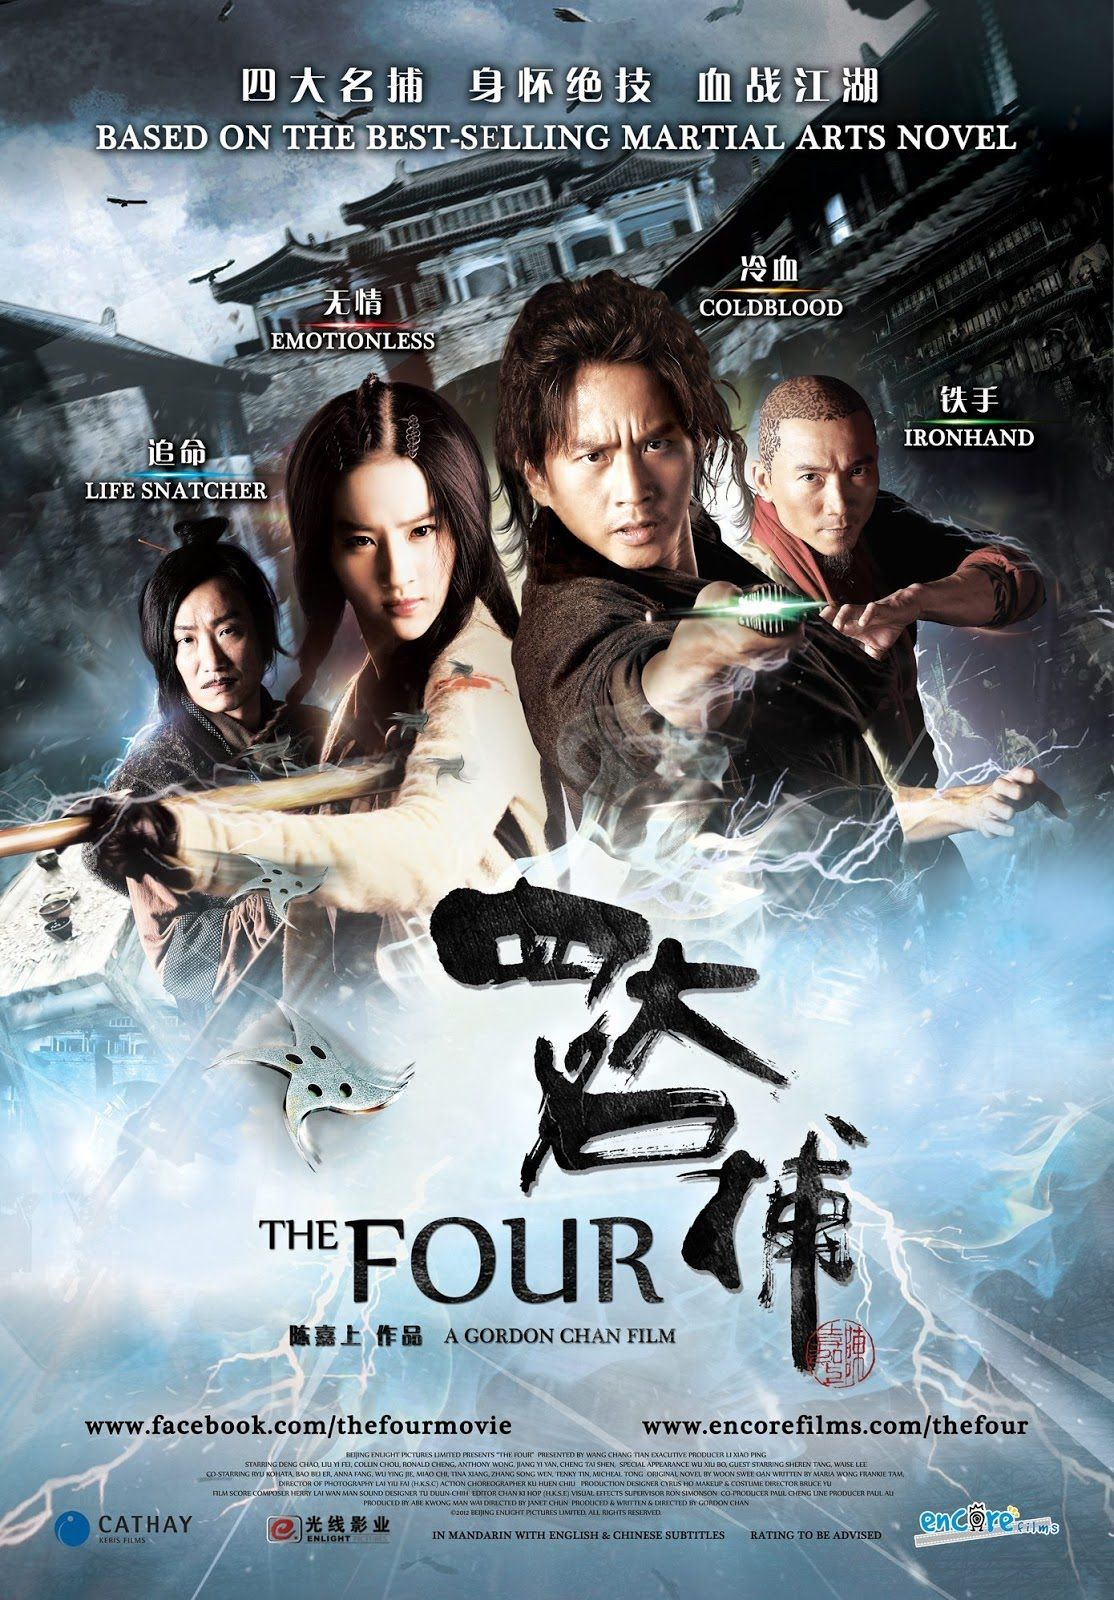 The Four 3 Action Movies 2015 Full English Subtitles Hd Martial Arts Movies Action Movies Action Movies 2015